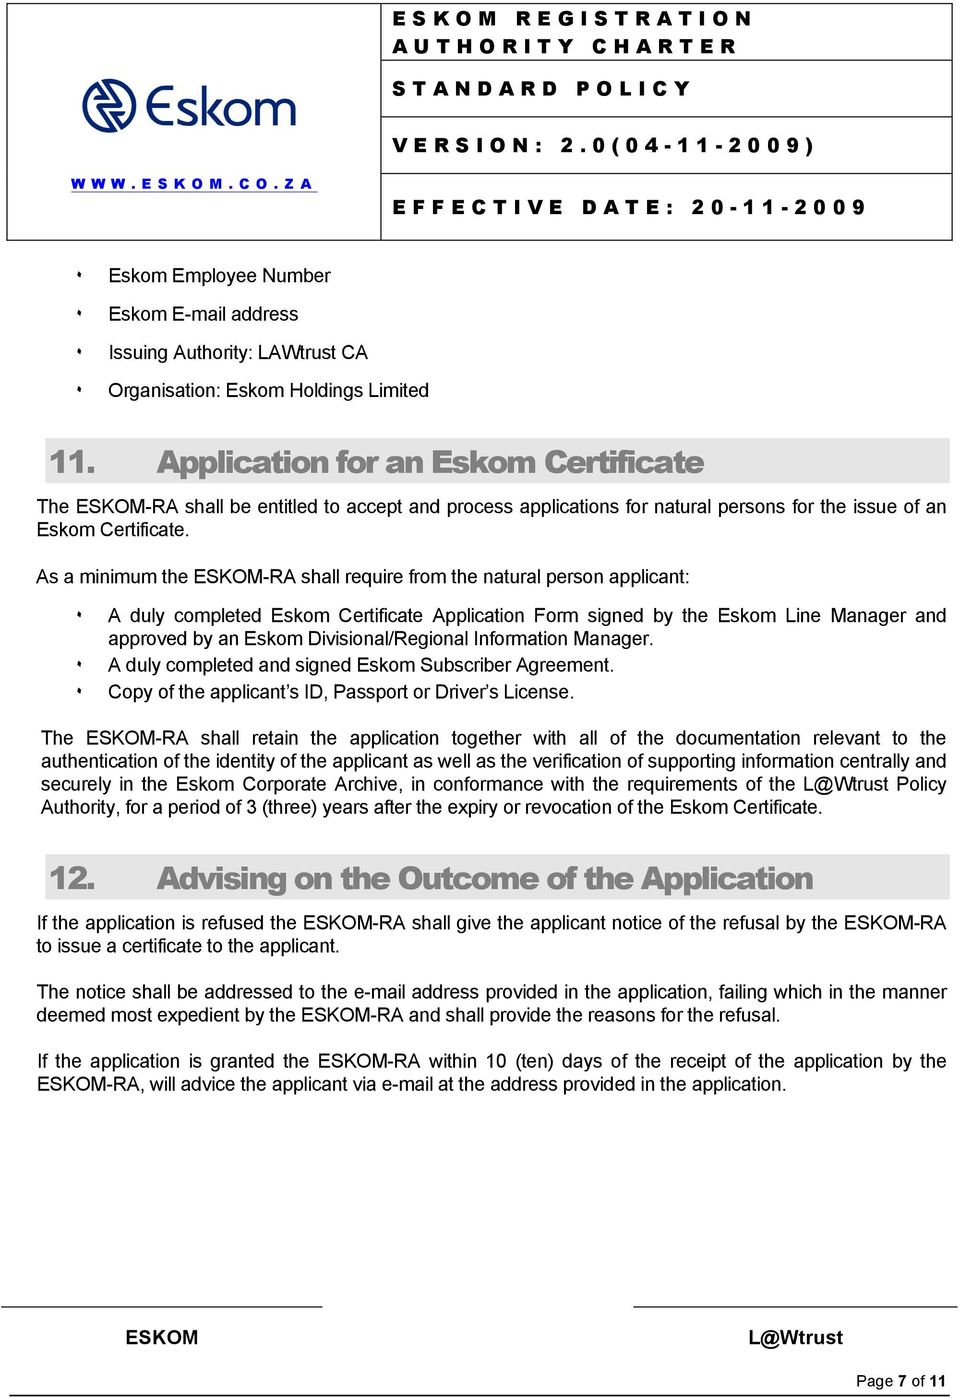 As a minimum the -RA shall require from the natural person applicant: ٠۰ A duly completed Eskom Certificate Application Form signed by the Eskom Line Manager and approved by an Eskom